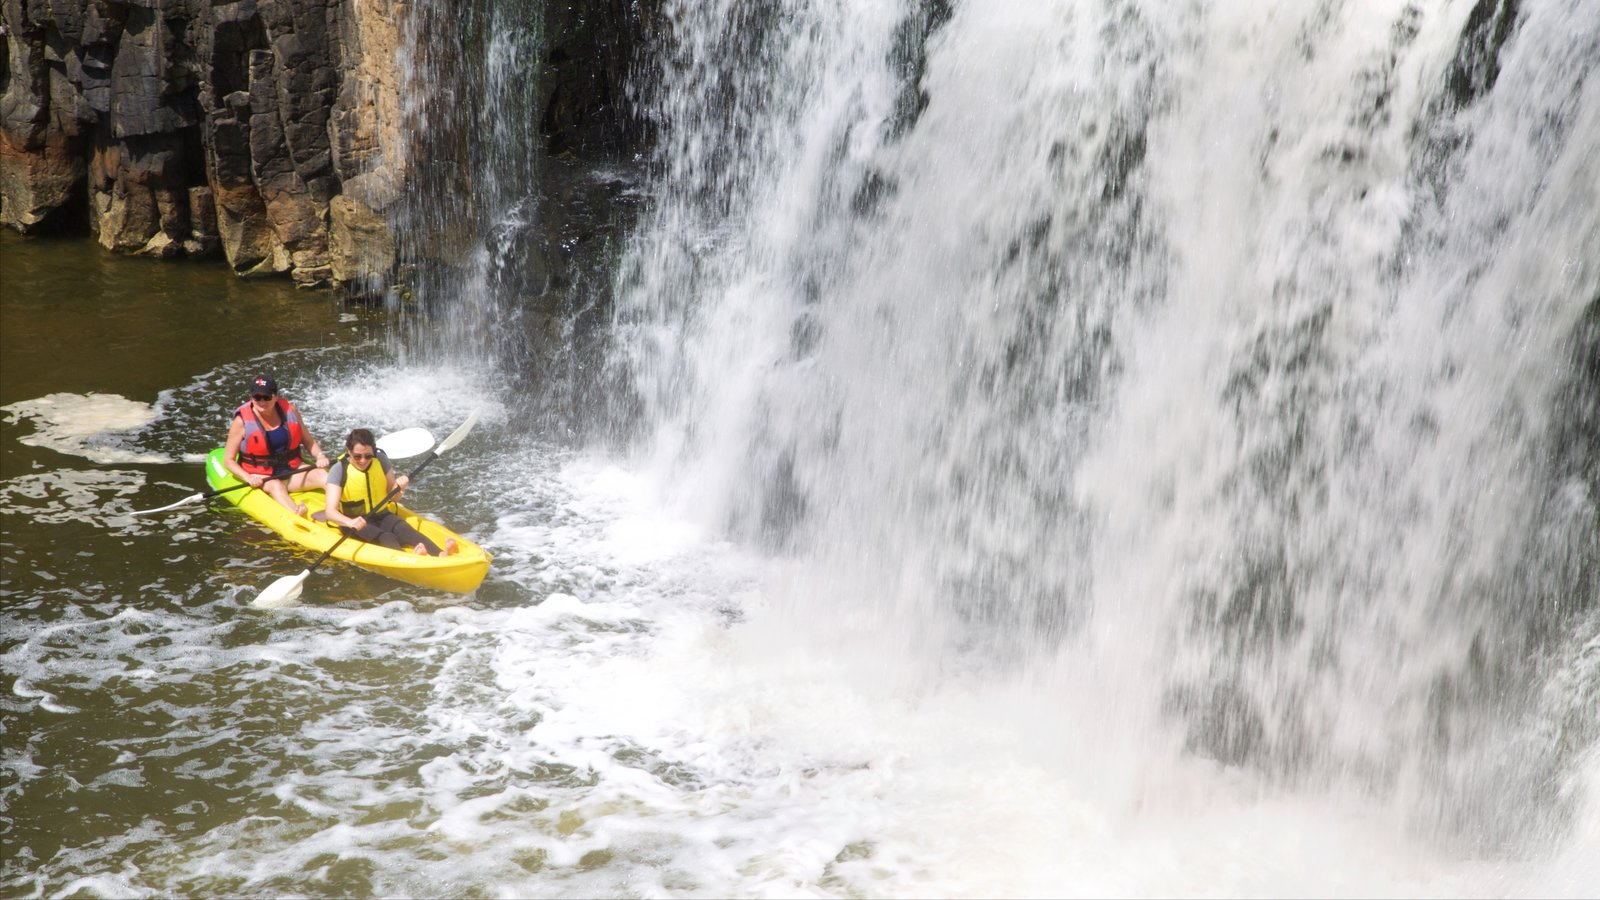 Haruru Falls which includes kayaking or canoeing, a waterfall and a river or creek